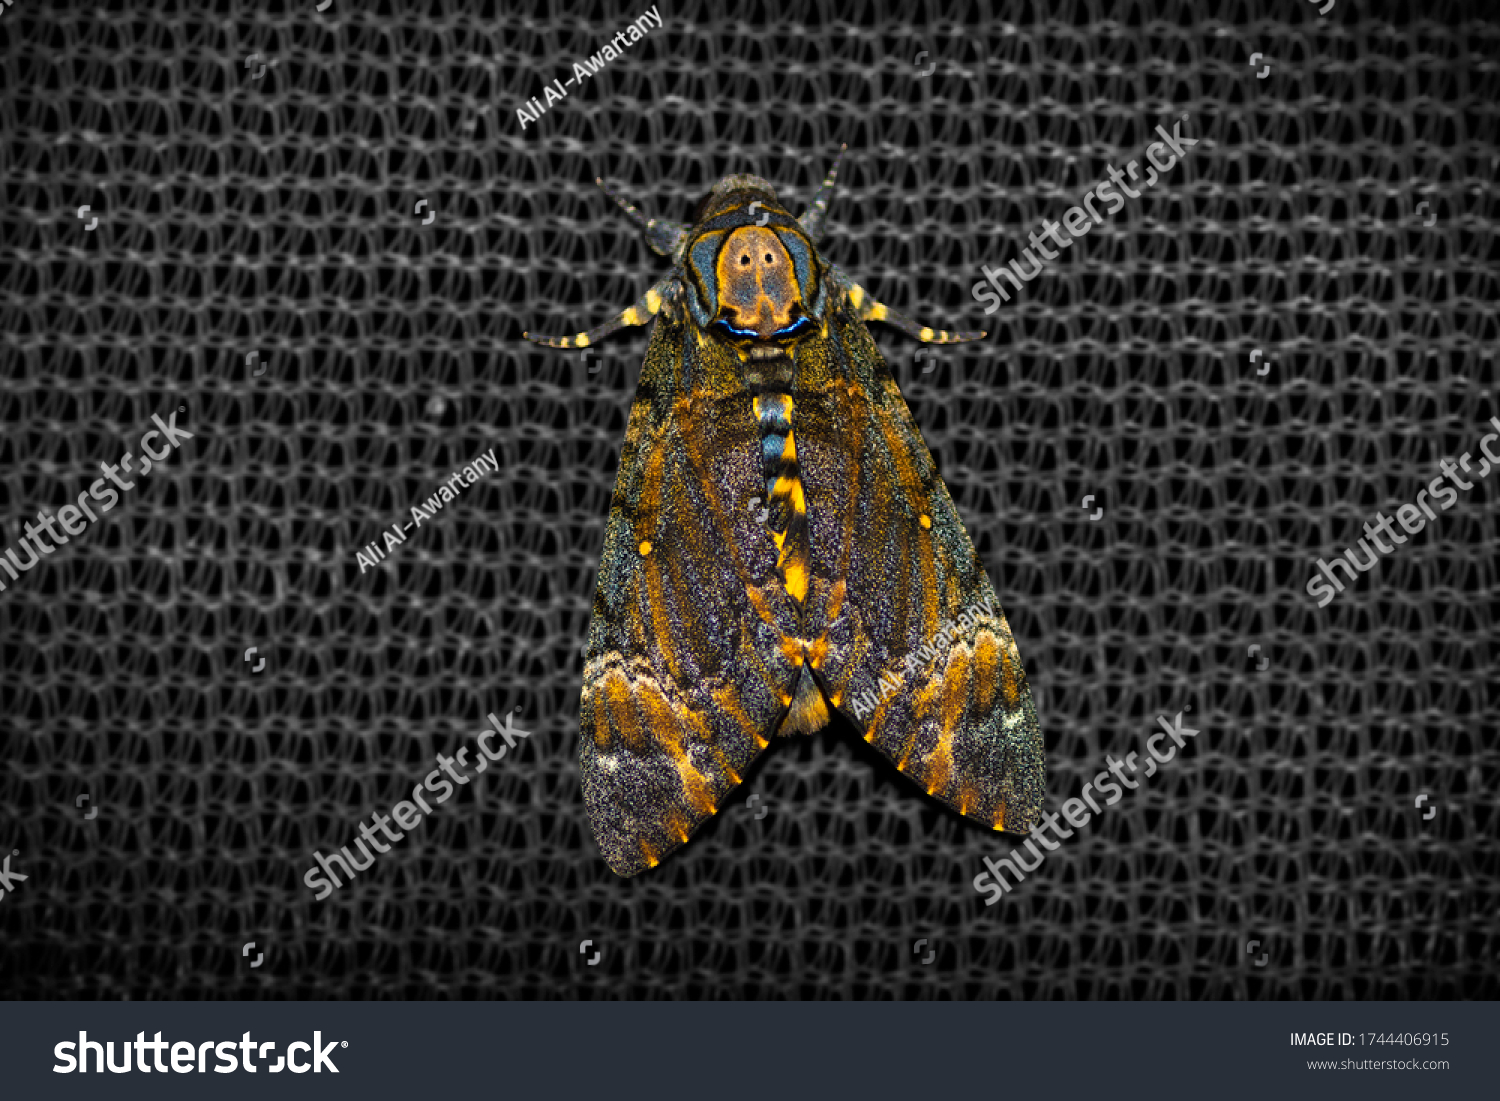 stock-photo-close-up-to-night-moth-on-bl